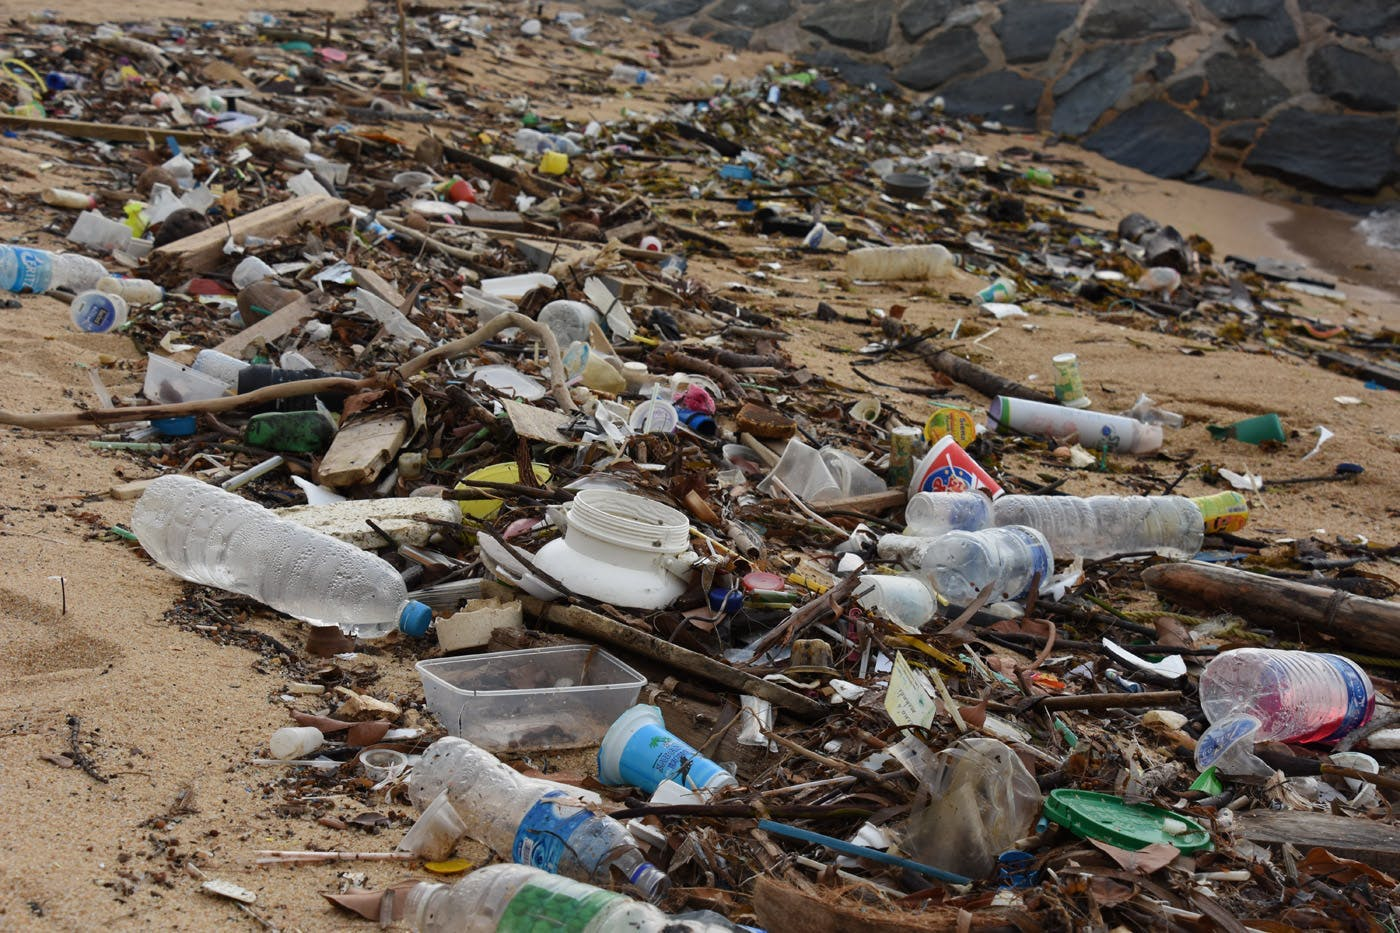 Environmental Impact of plastics reveals severe damage to climate